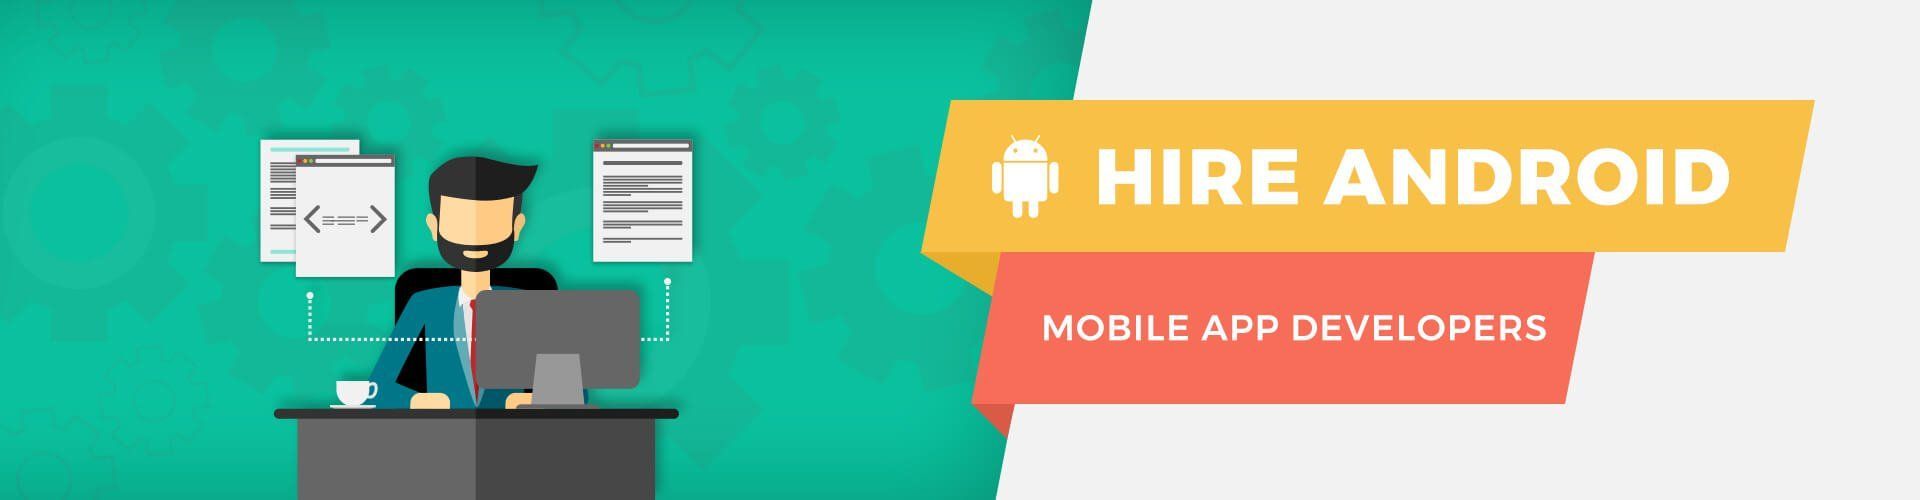 Hire Android Developer (With images) Android app development